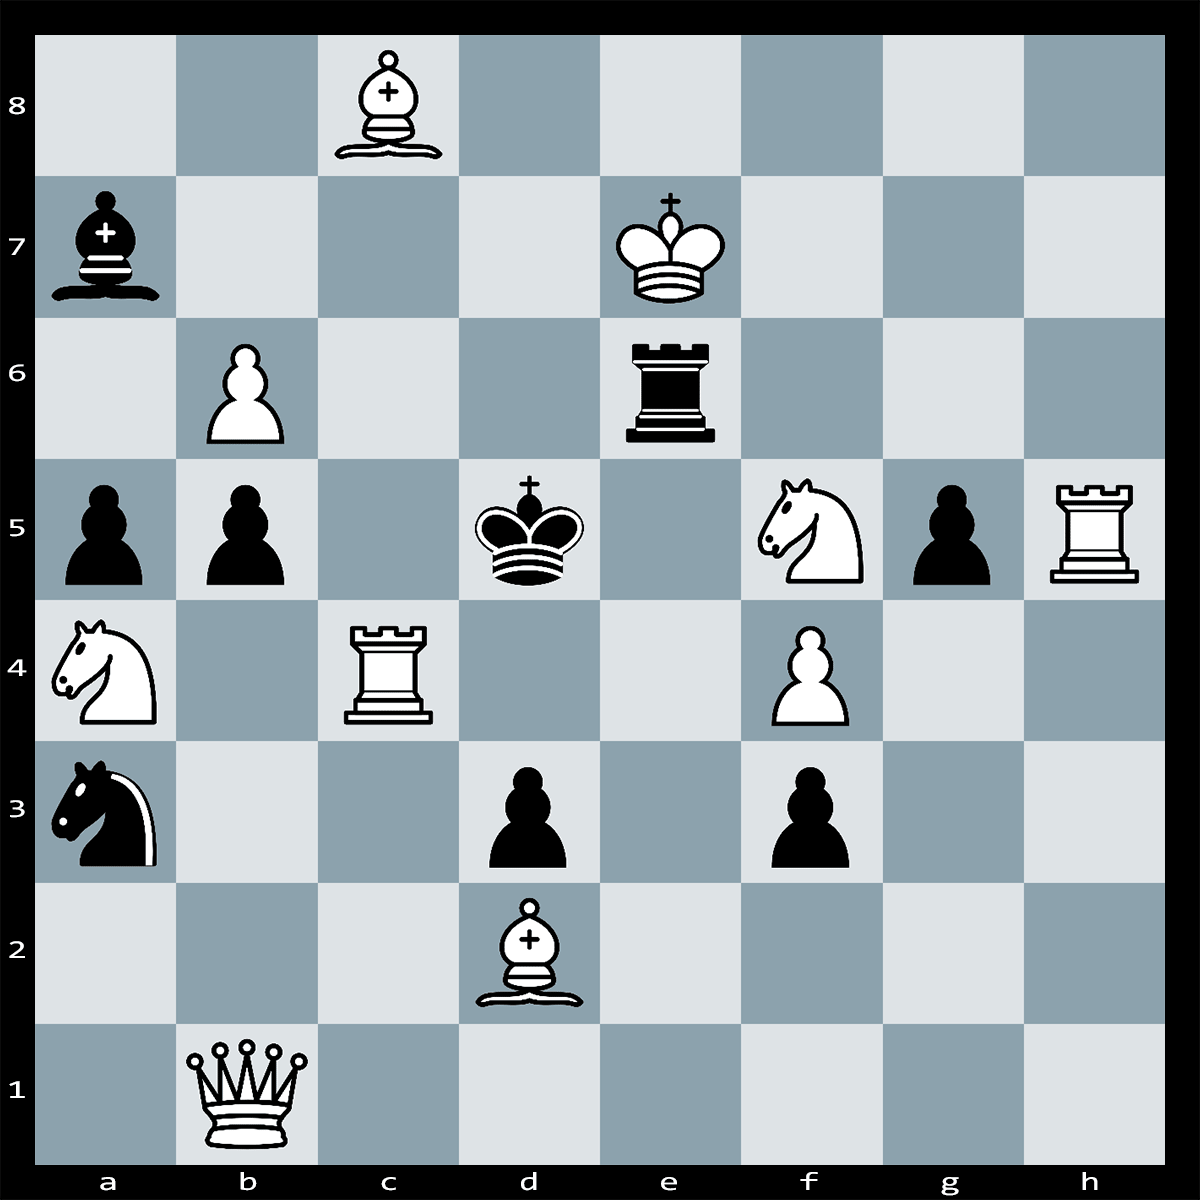 Mate in One move, White to Play | Chess Puzzle #188